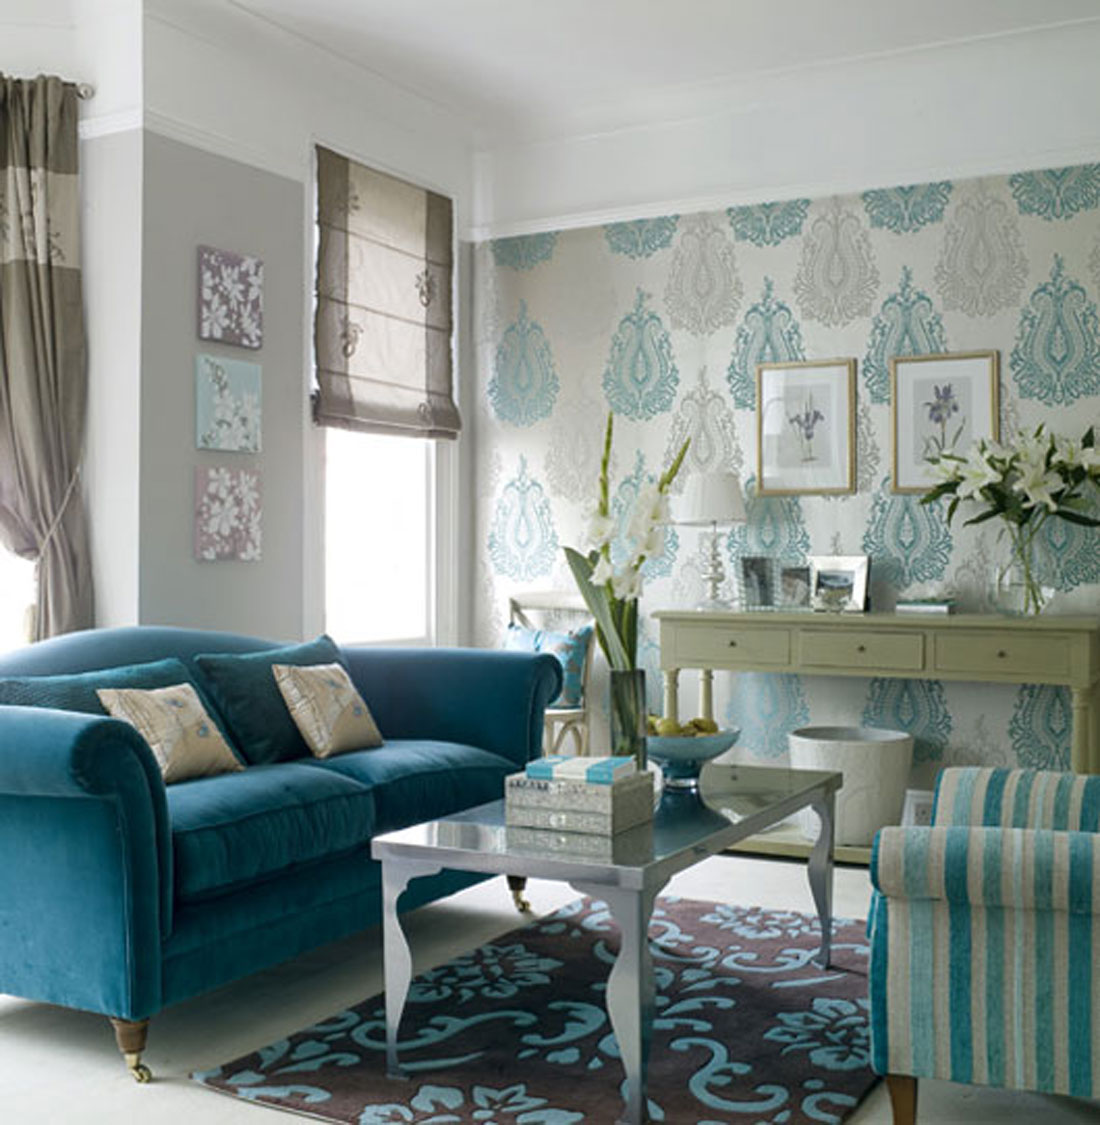 The texture of teal and turquoise a bold and beautiful for Best interior design ideas living room